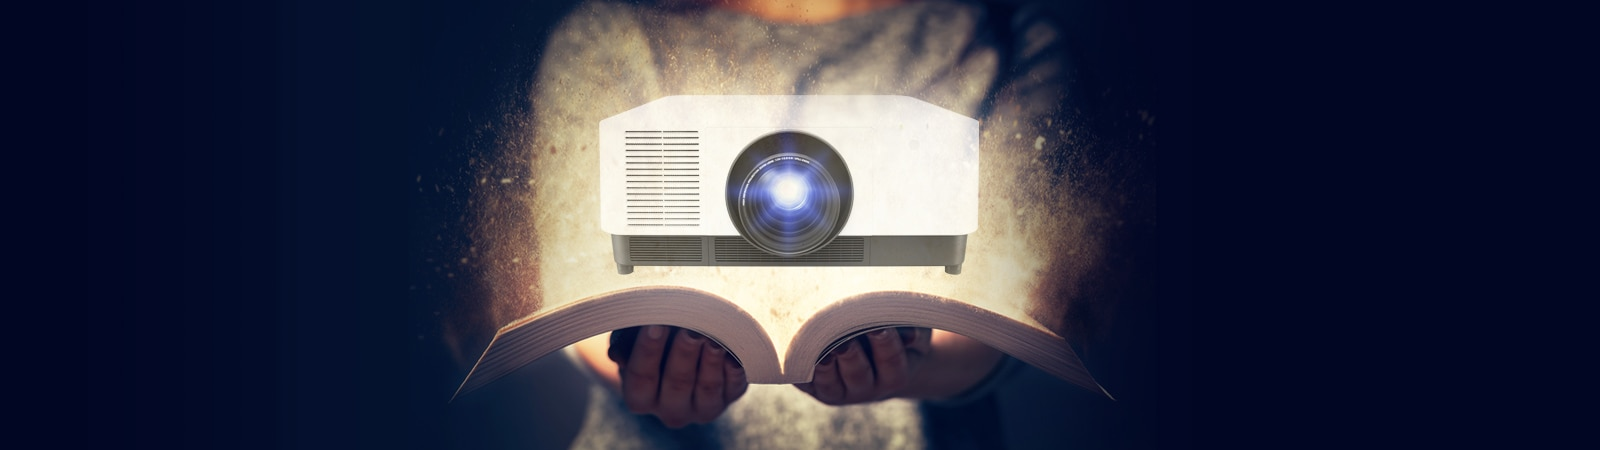 Banner graphic representing a buying guide to Sony professional projectors.